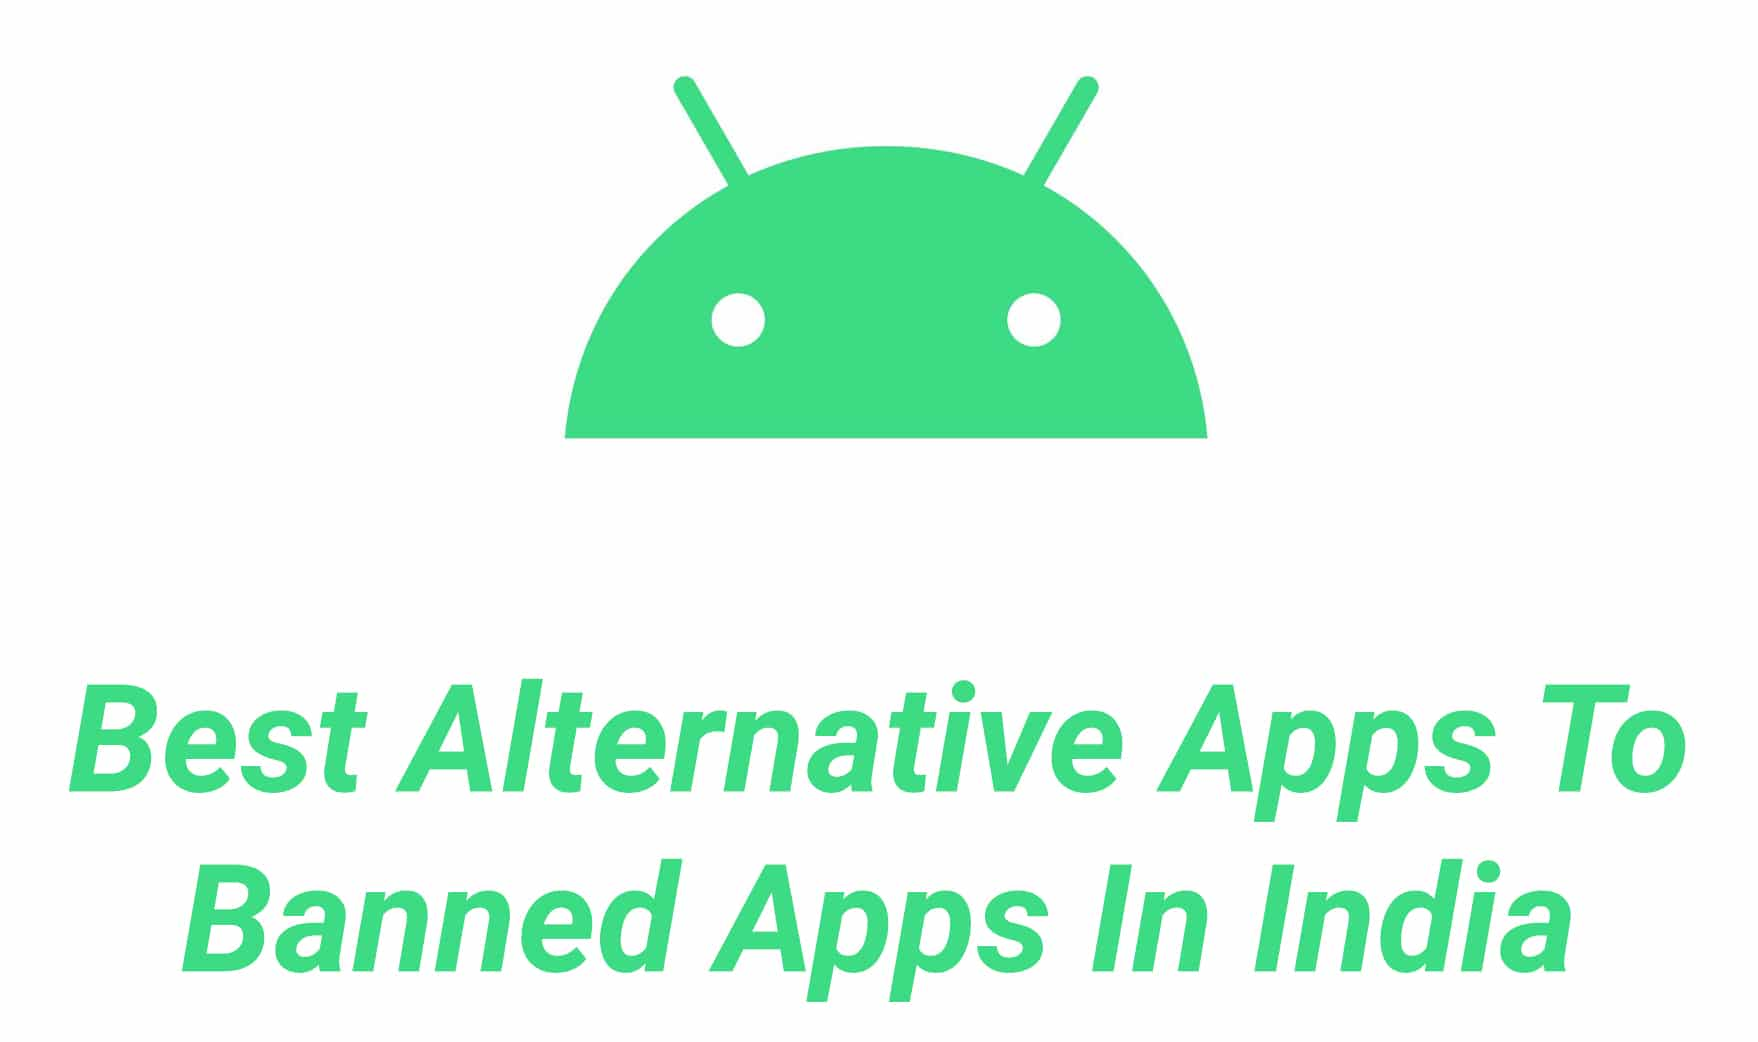 Best Alternative Apps To Banned Apps In India